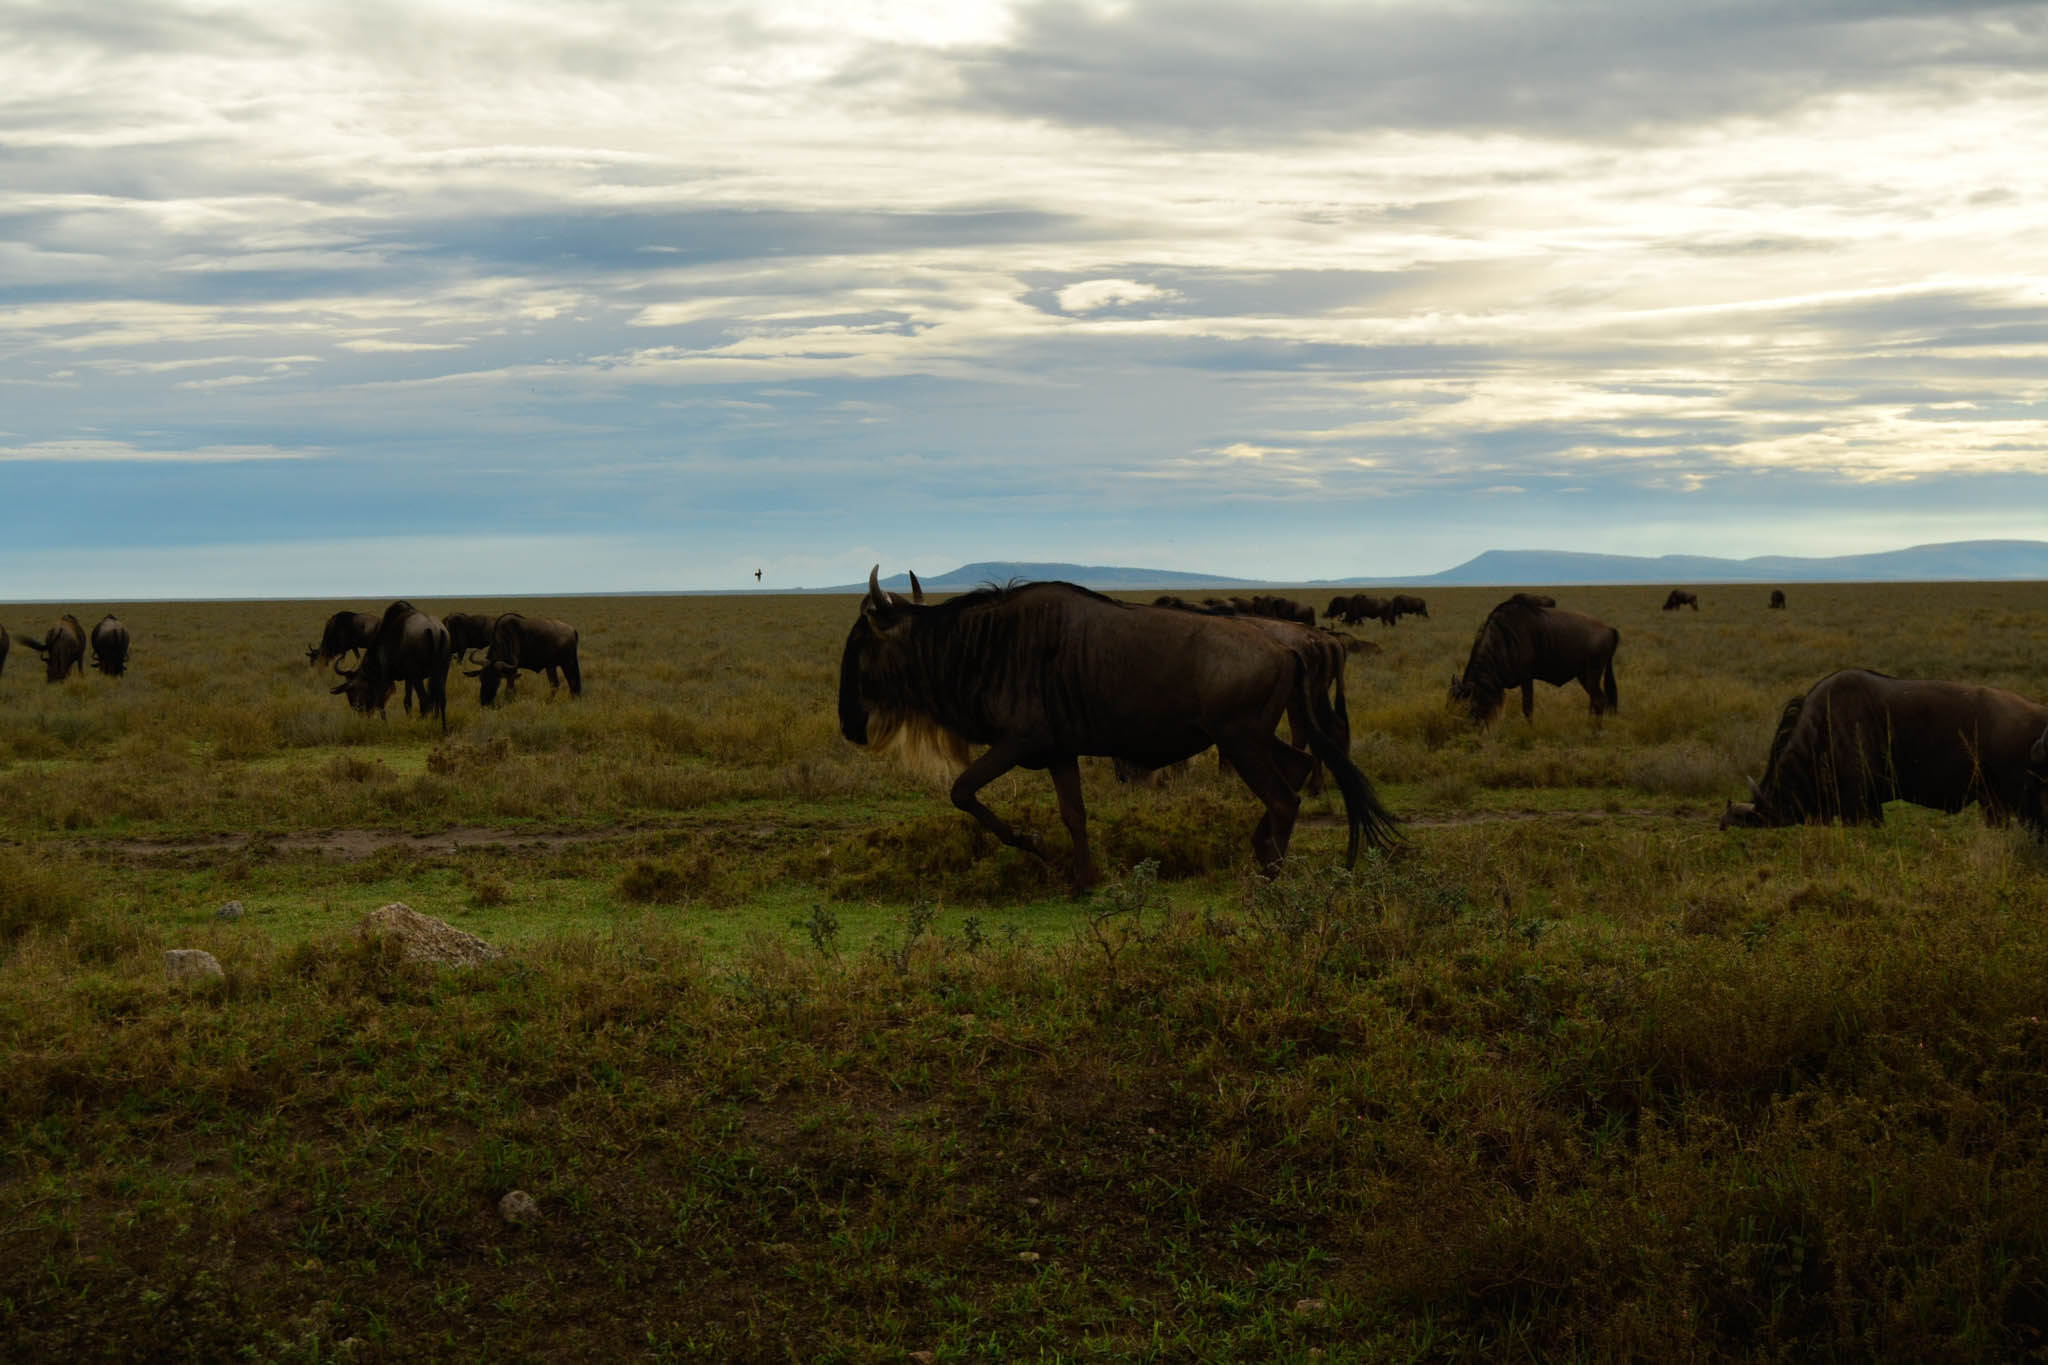 More Wildebeest!